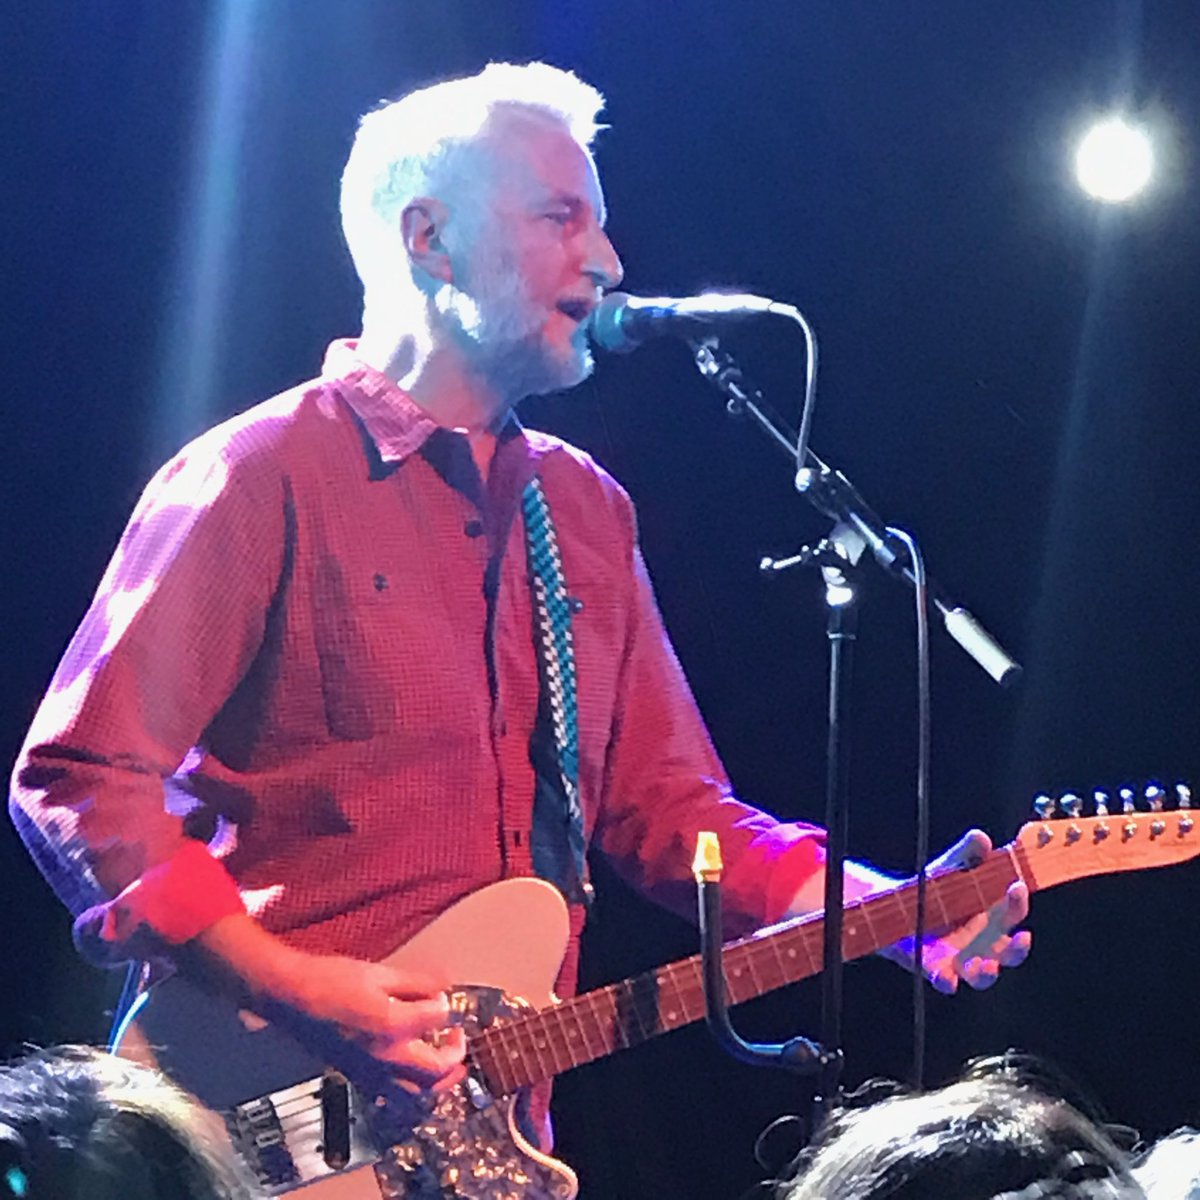 35 years of seeing Billy Bragg, latest installment tonight at The Troubadour